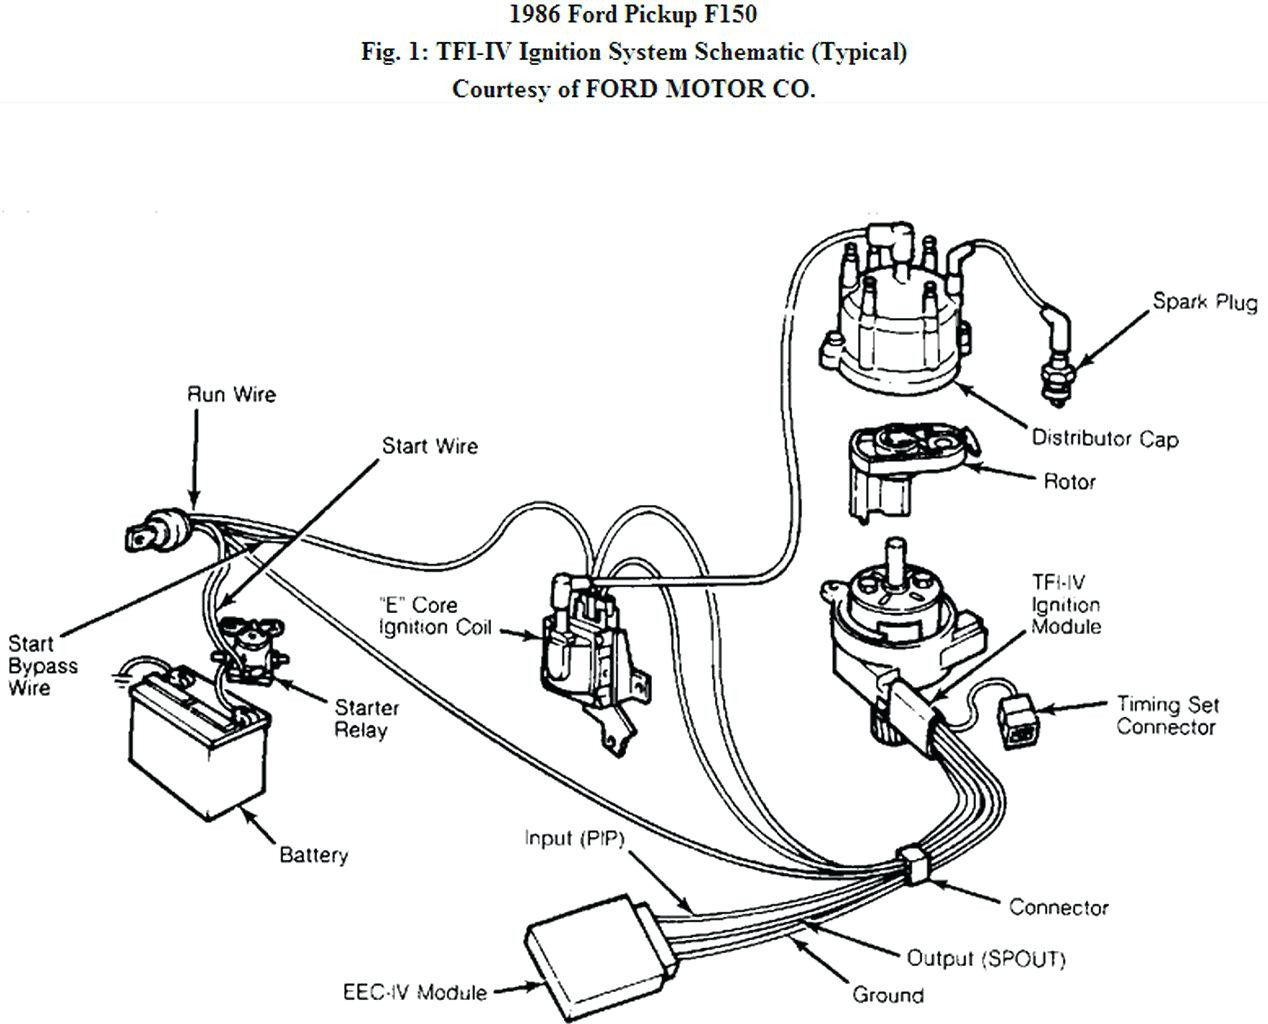 hight resolution of ford ikon wiring diagram auto electrical wiring diagram rh wiringdiagramvoid herokuapp com 1986 ford f150 engine